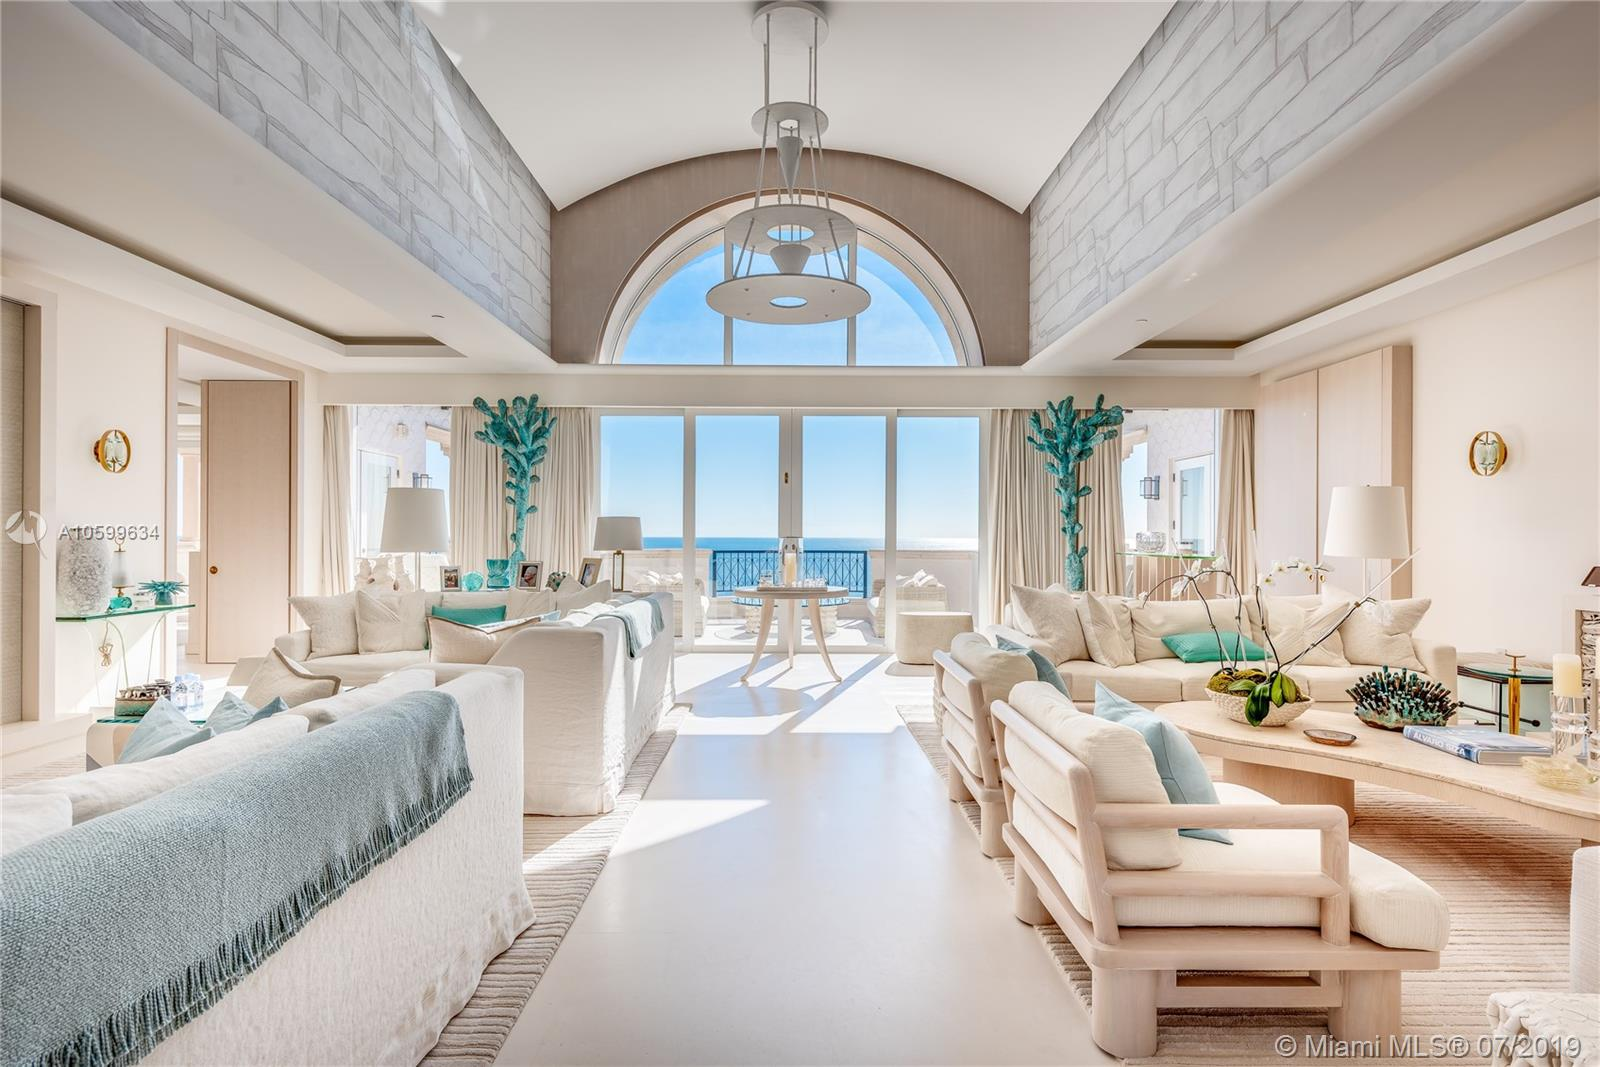 7292 Fisher Island Dr, Unit #PH7292 Luxury Real Estate